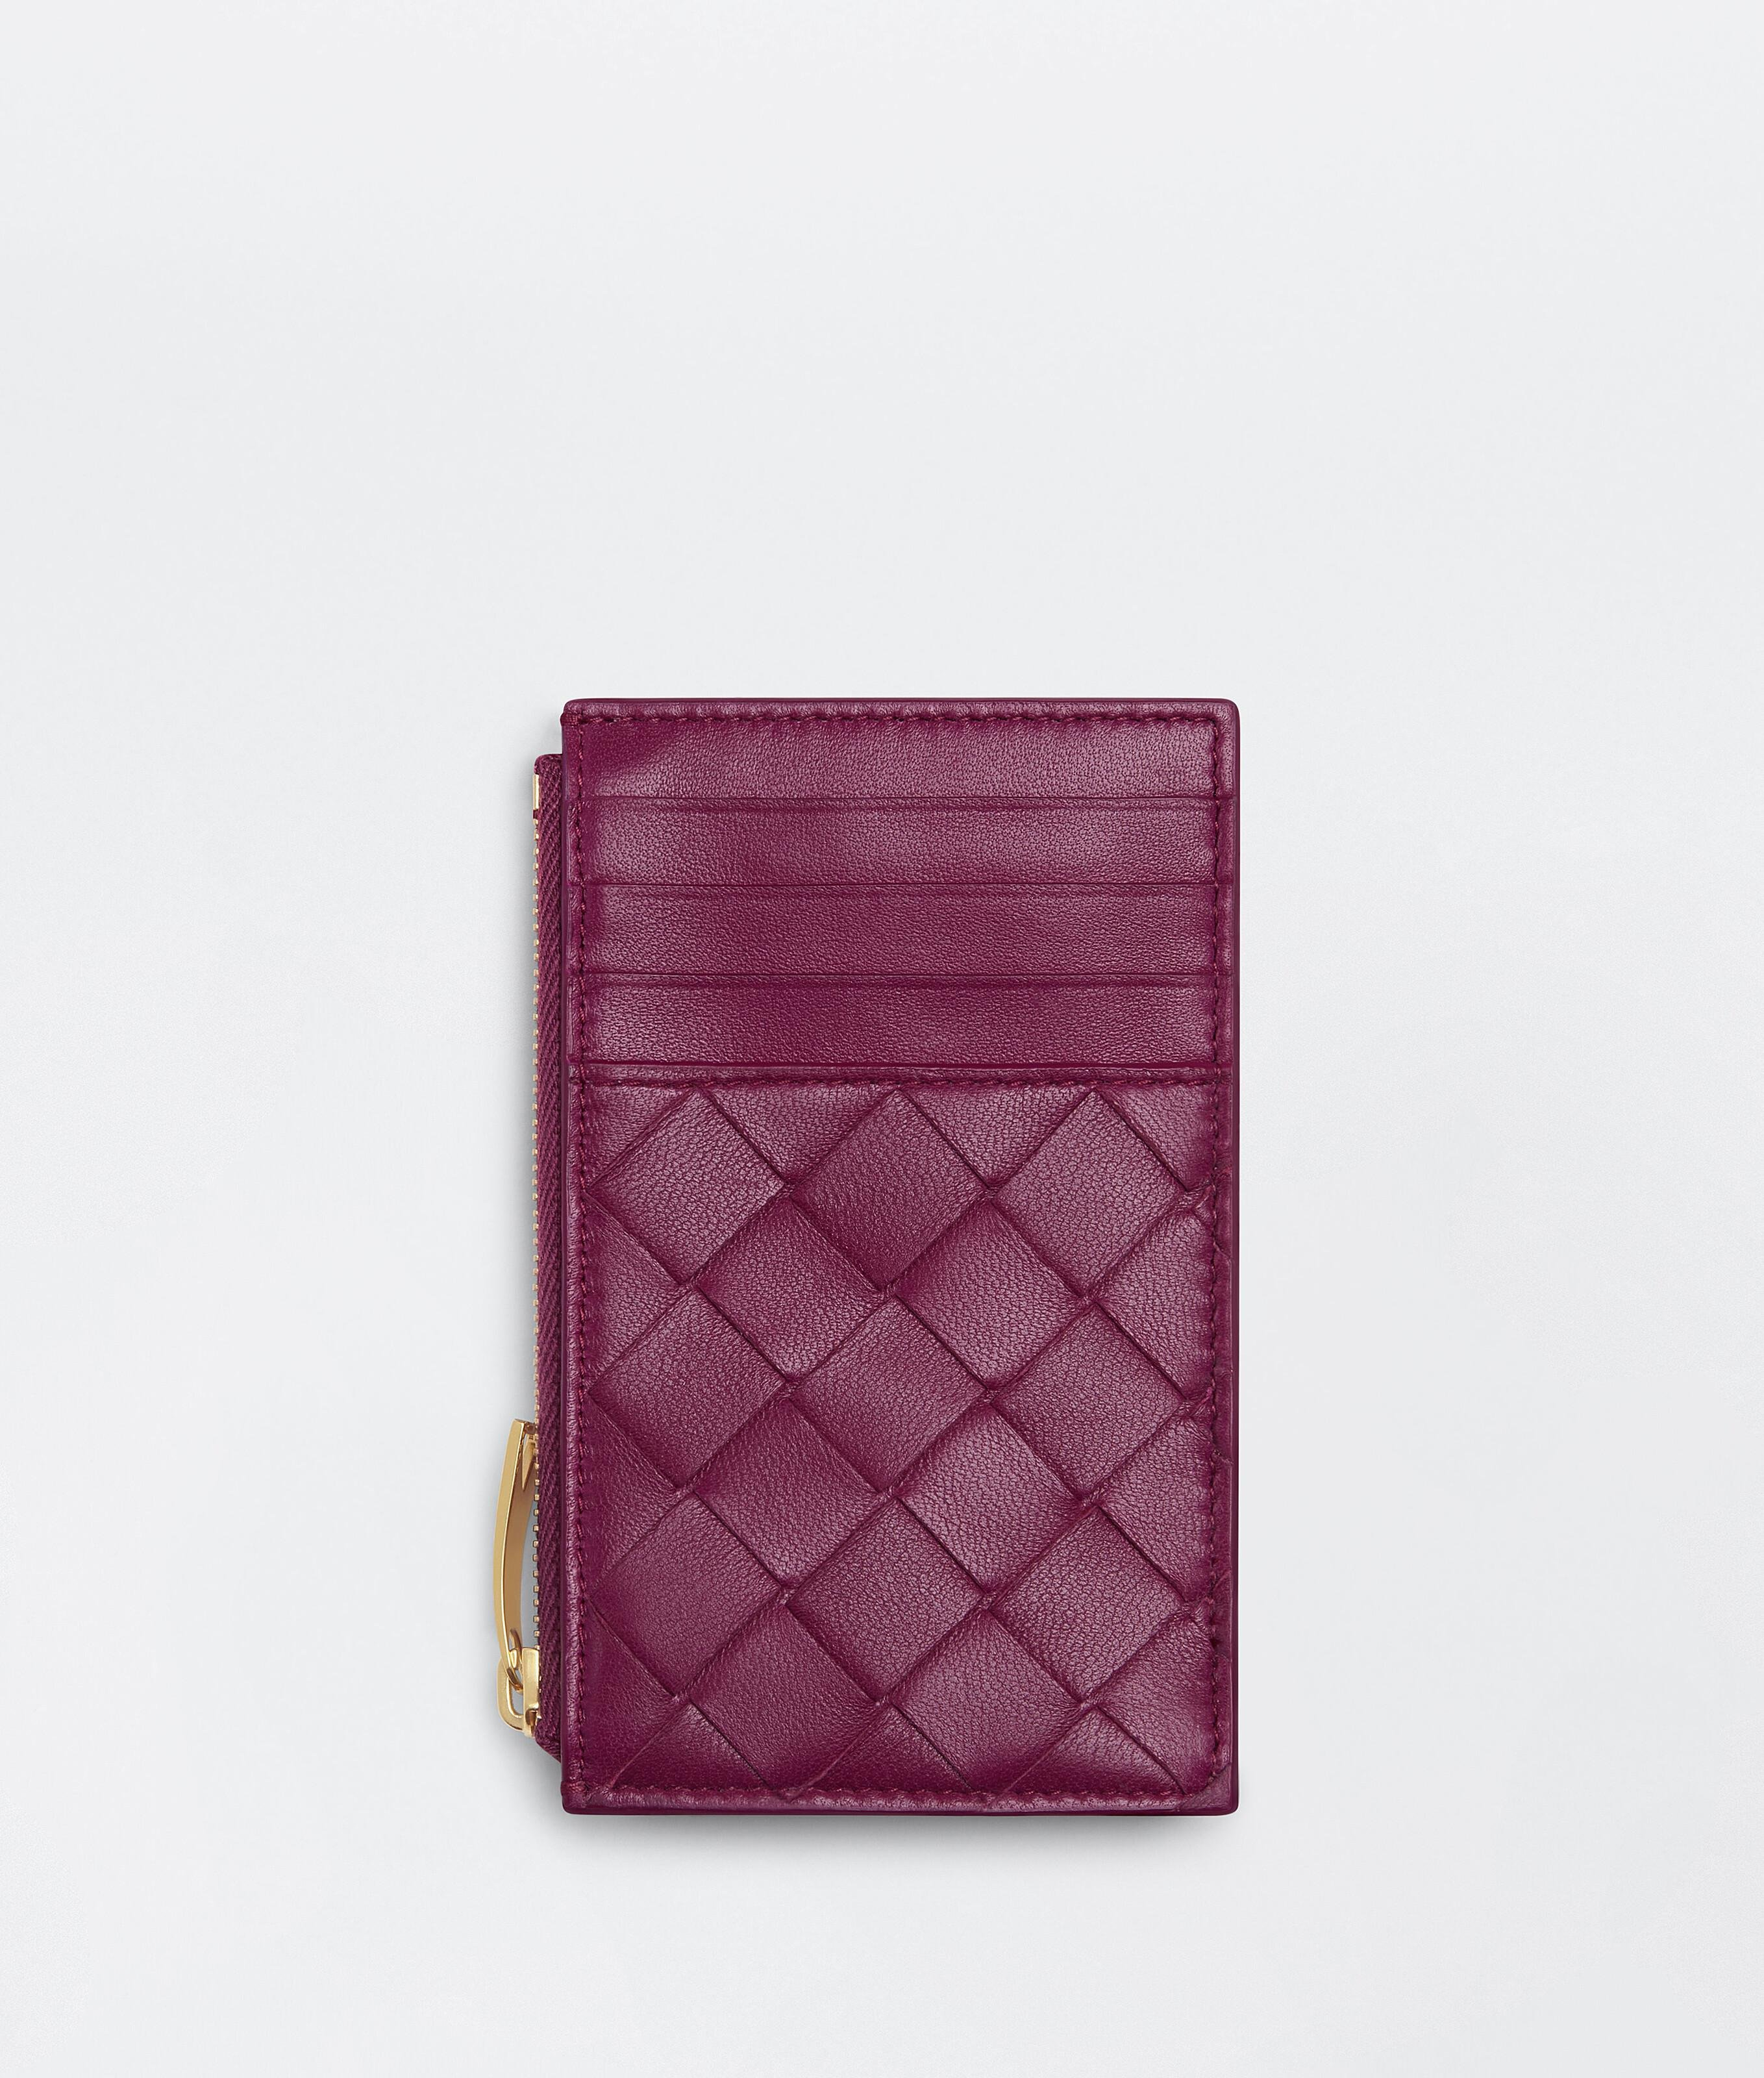 ZIPPED CARD CASE WITH COIN PURSE